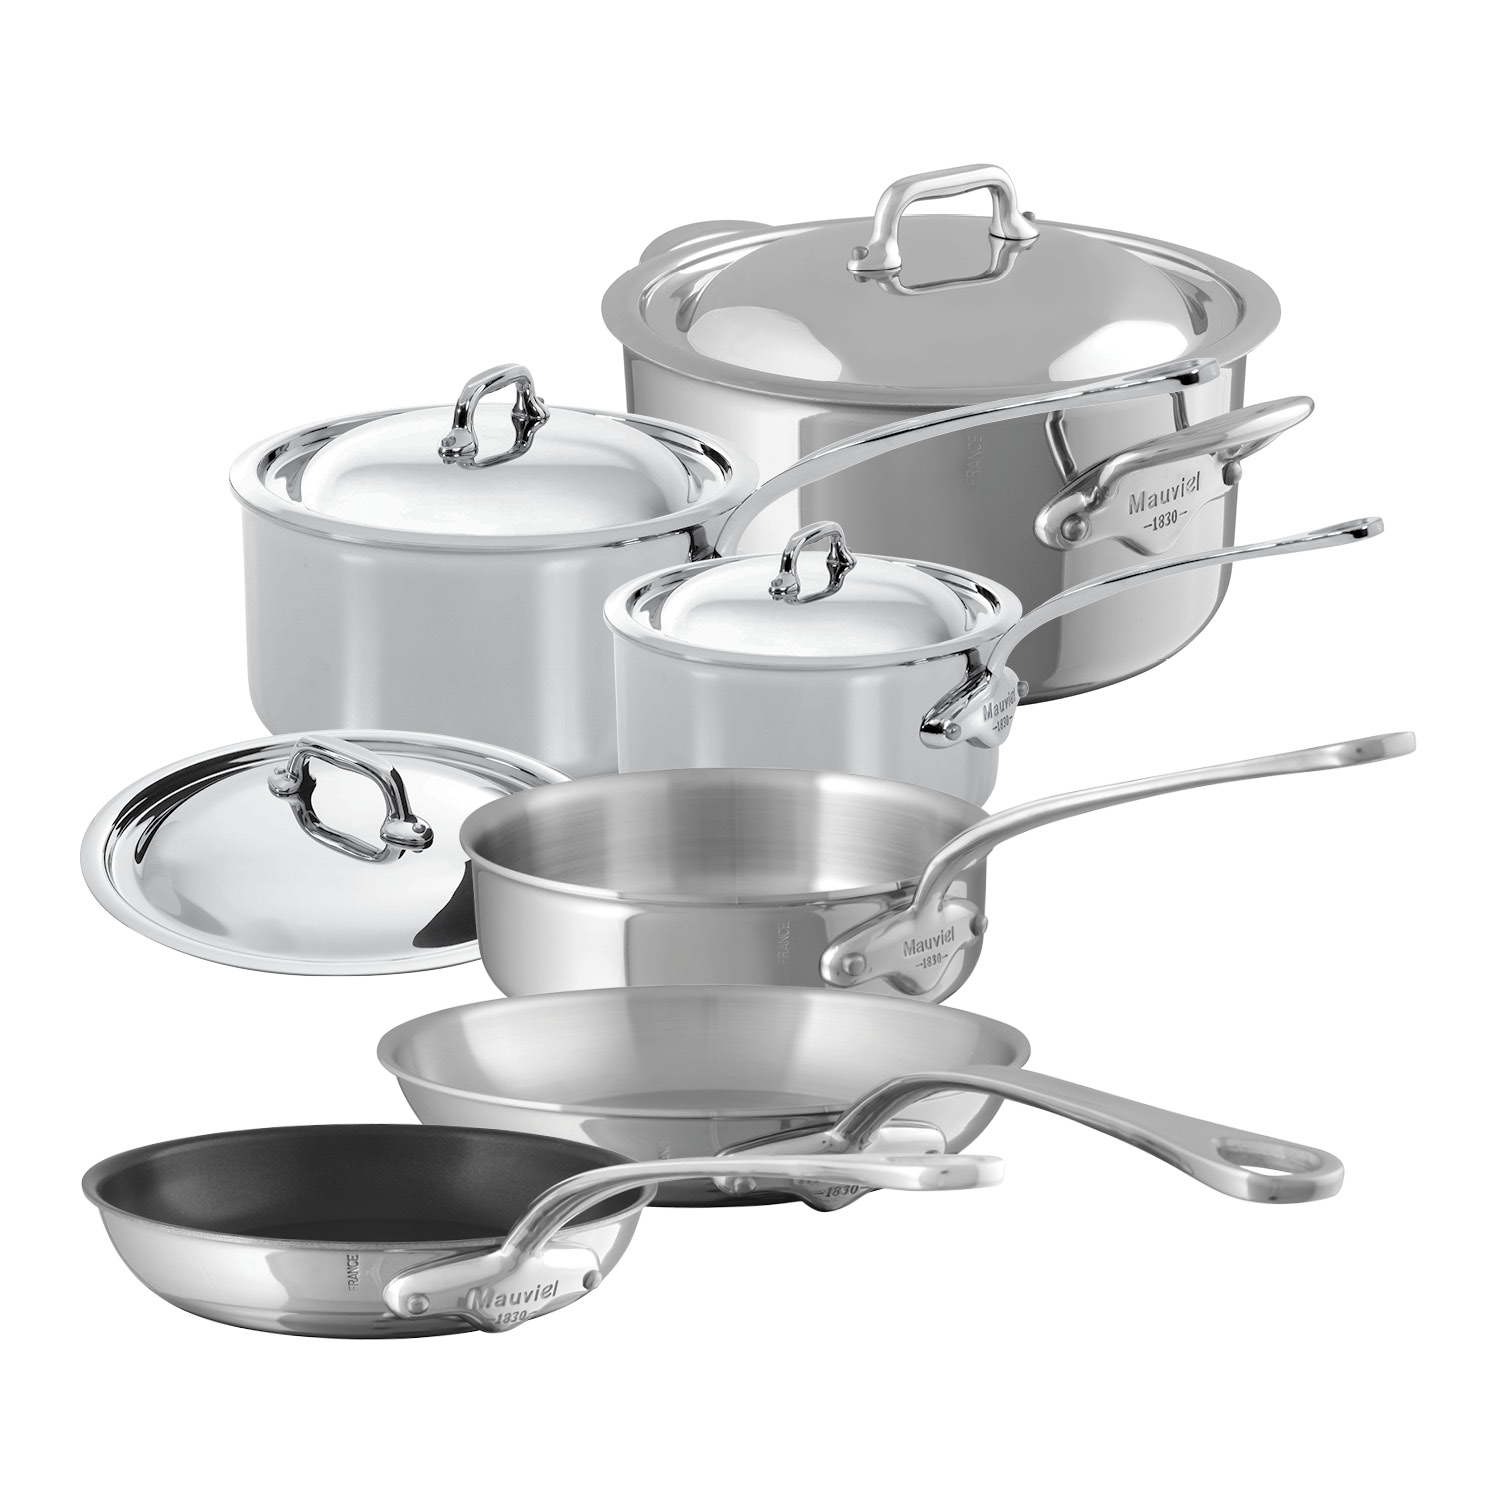 M'cook, Sets - 5 Ply Stainless Steel